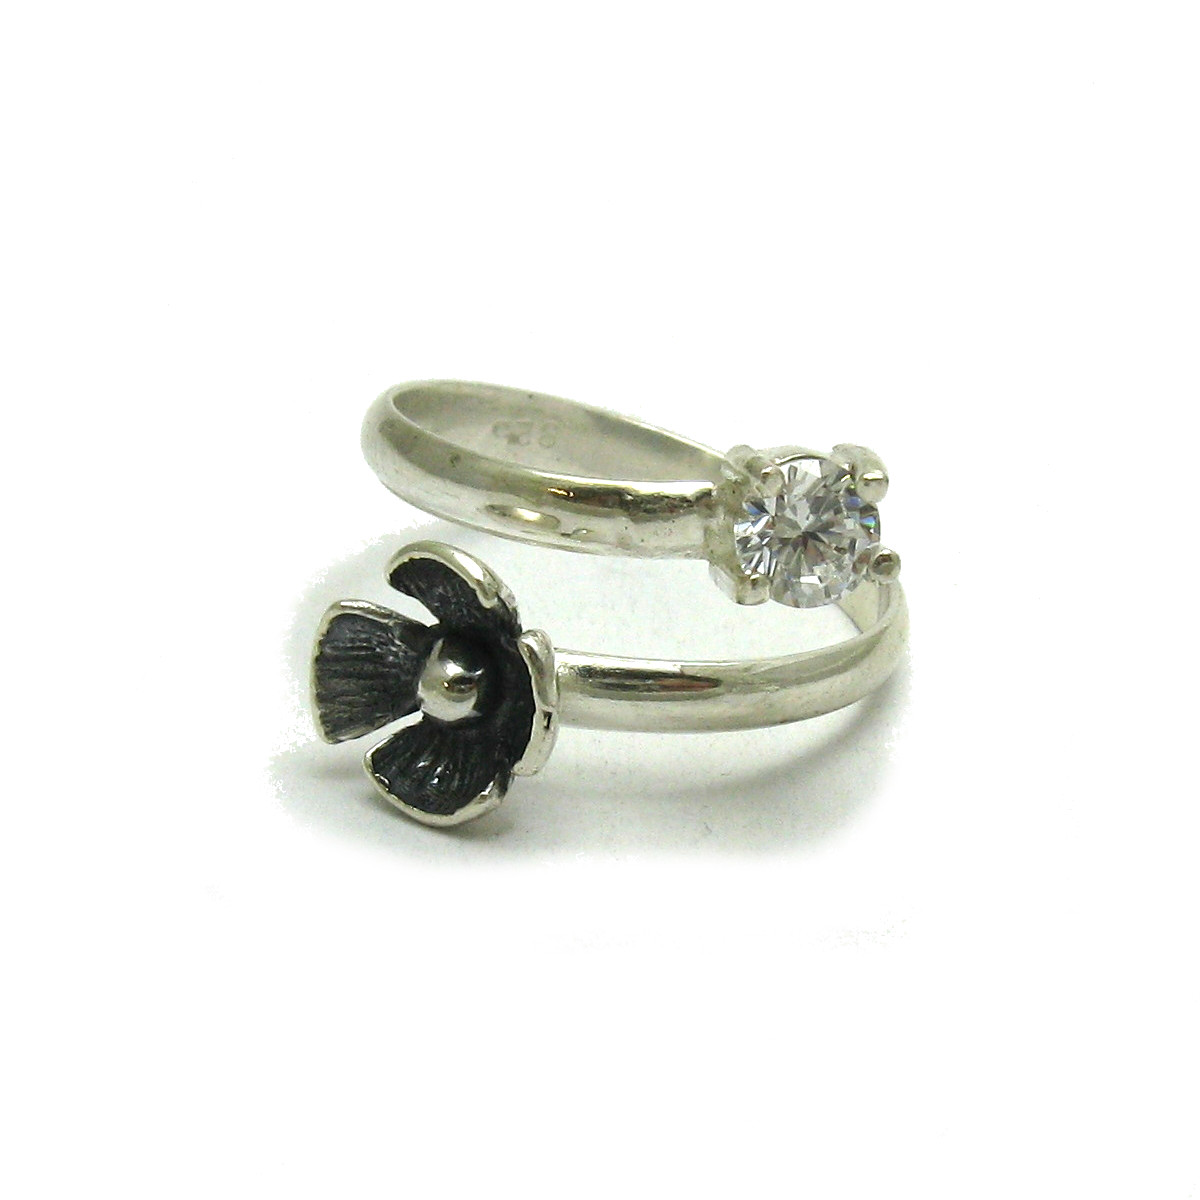 Silver ring - R001676